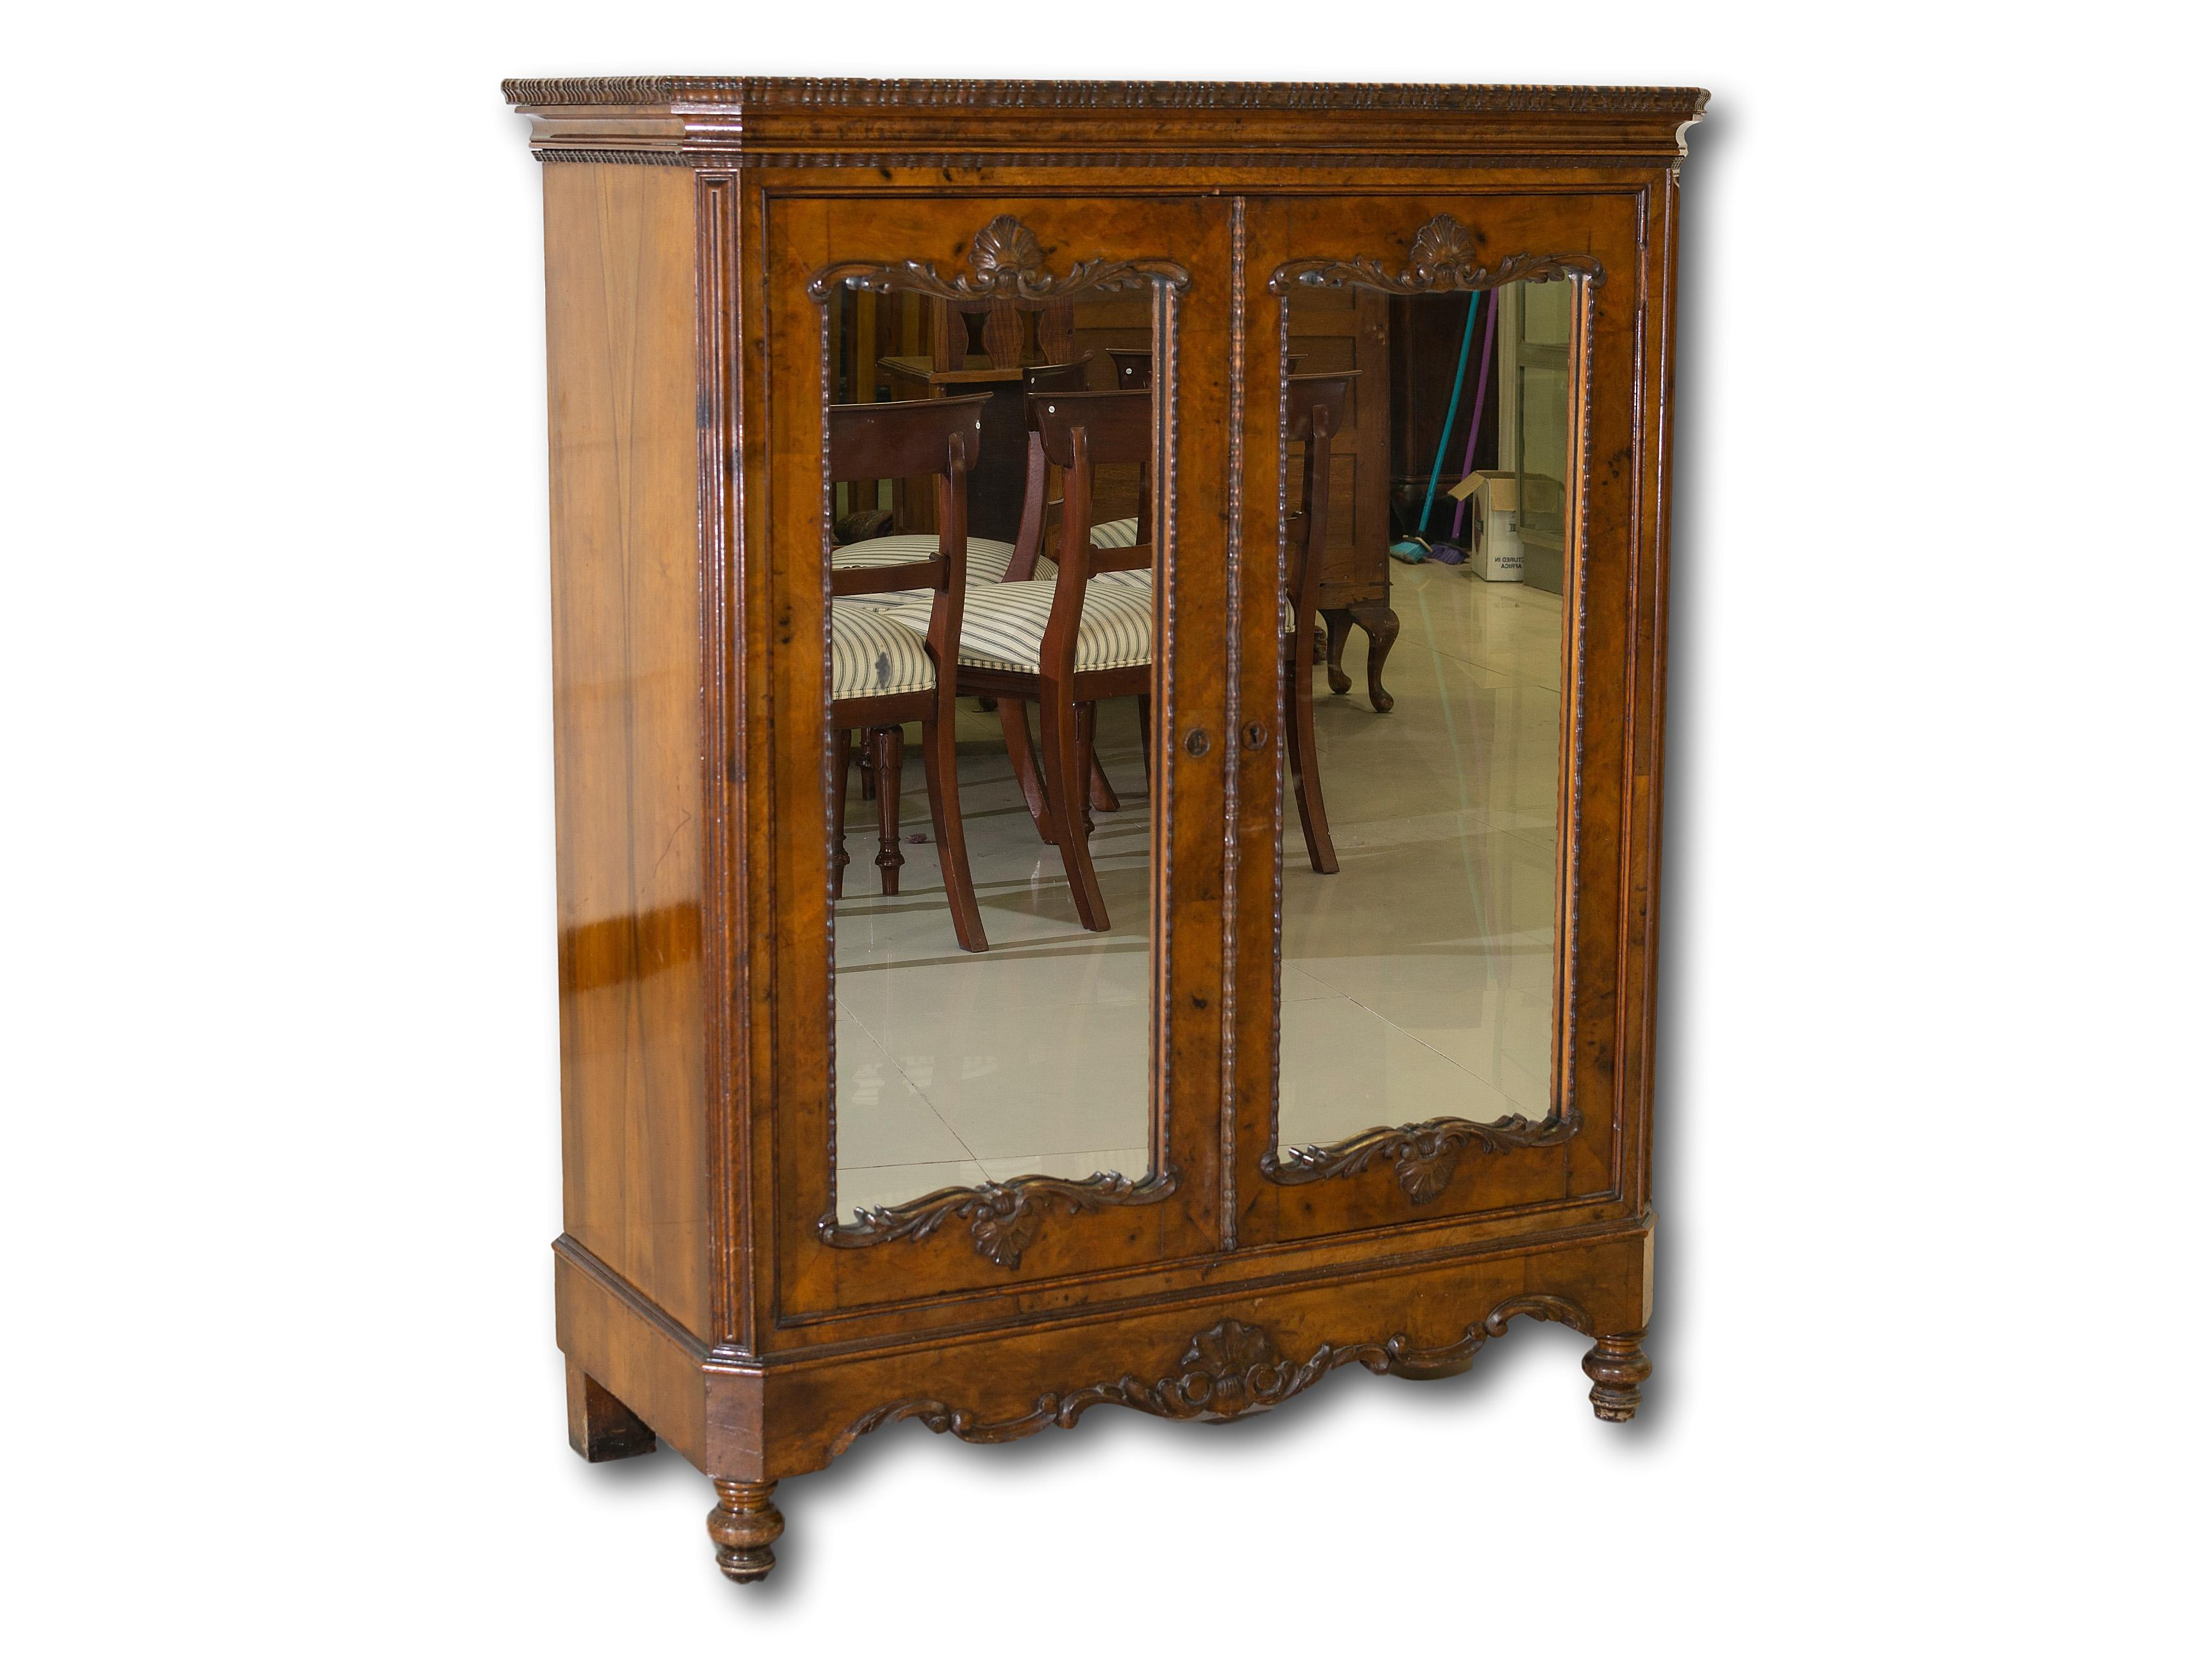 A Victorian Carved Walnut Pier Cabinet with Mirrored Doors, 133 x 107 x 49